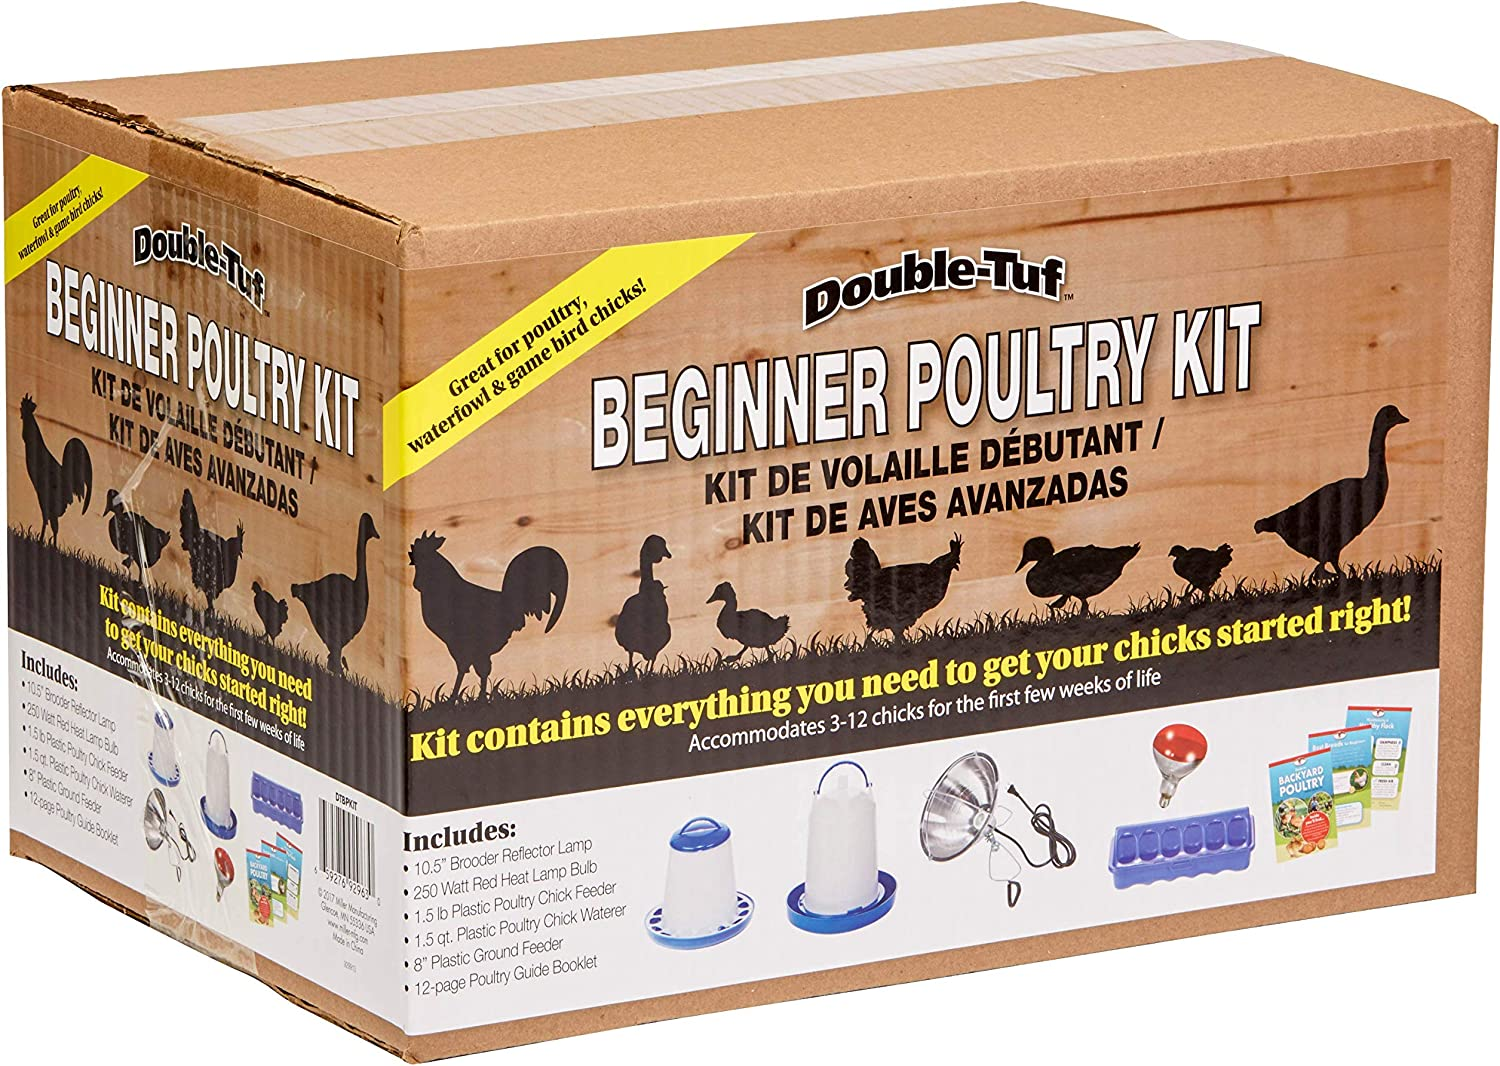 Double-Tuf Chicken and Poultry Starter Kit Beginner Poultry Kit (Books and Accessories) (Item No. DTBPKIT)